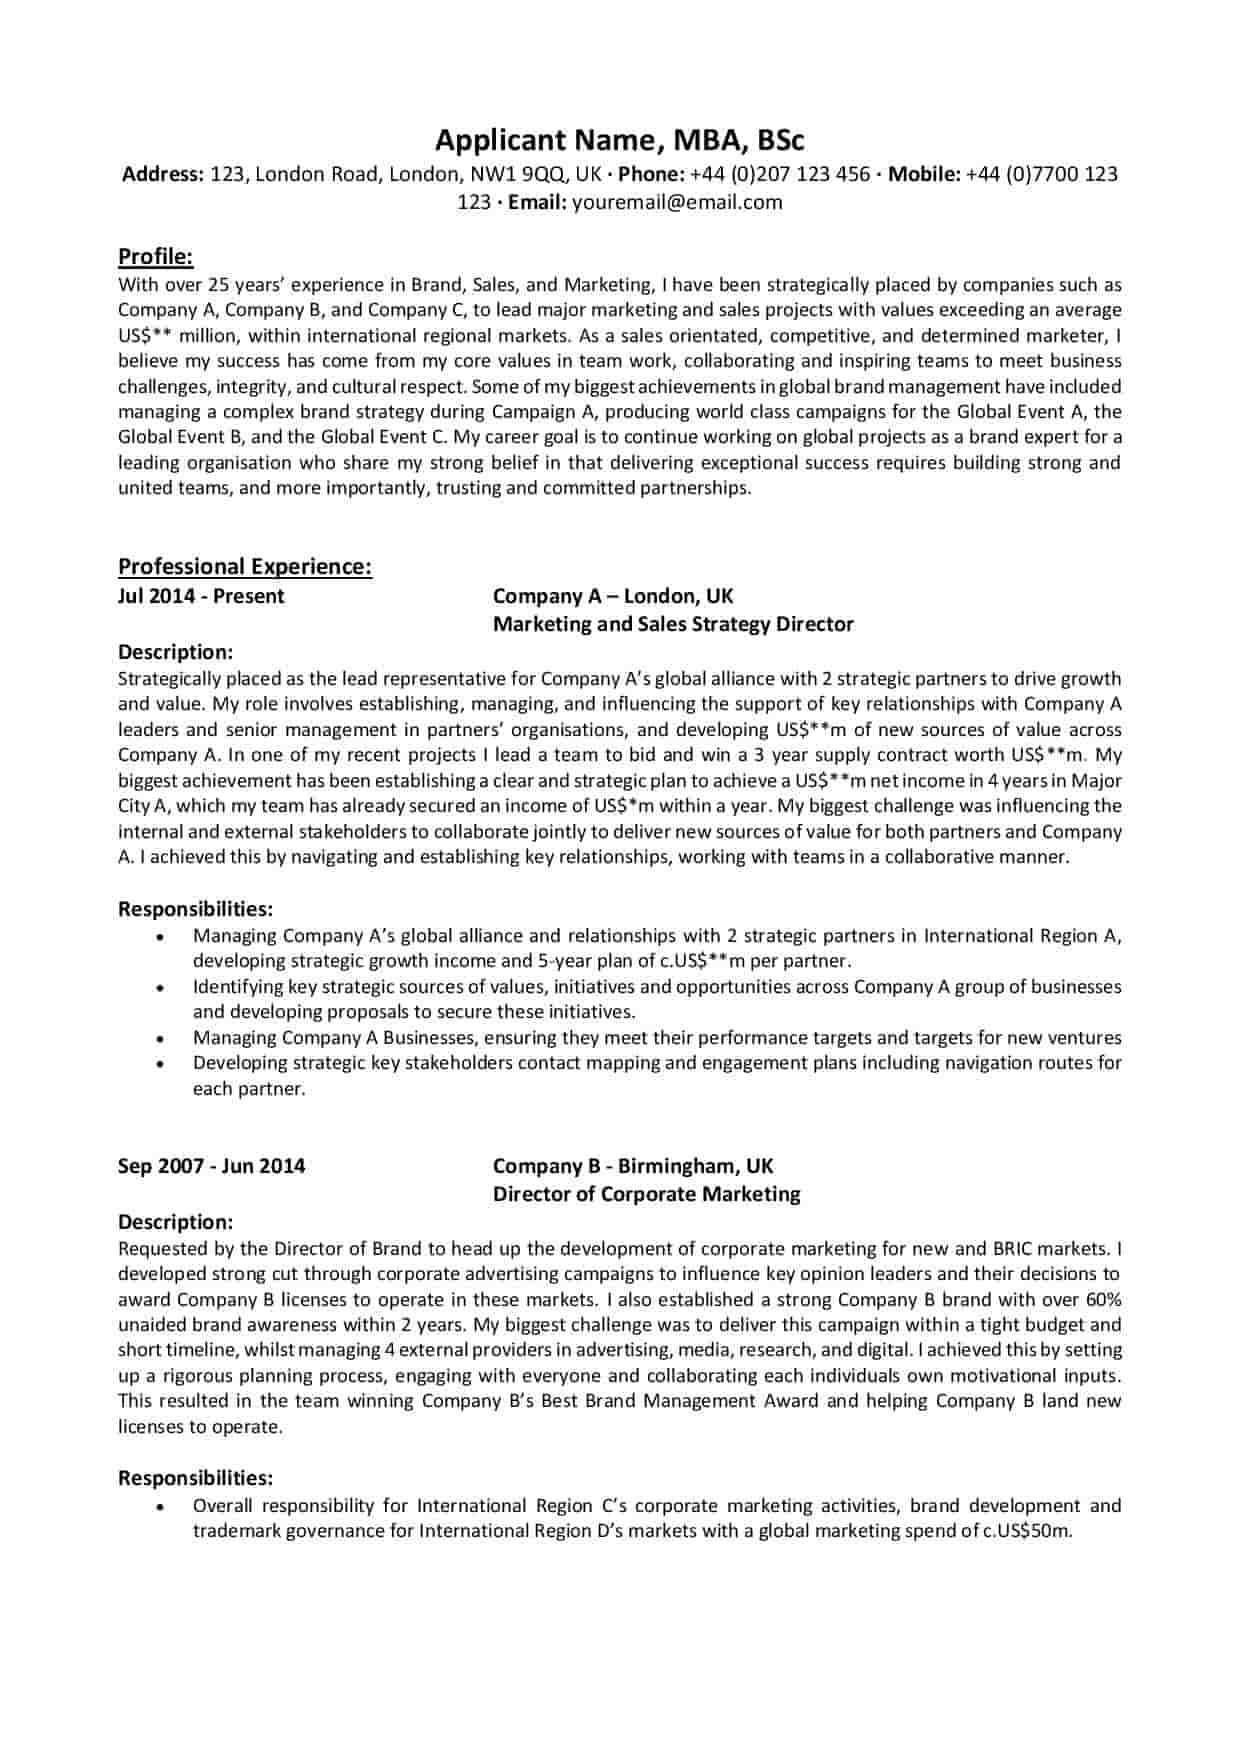 cv  u0026 linkedin profile writing